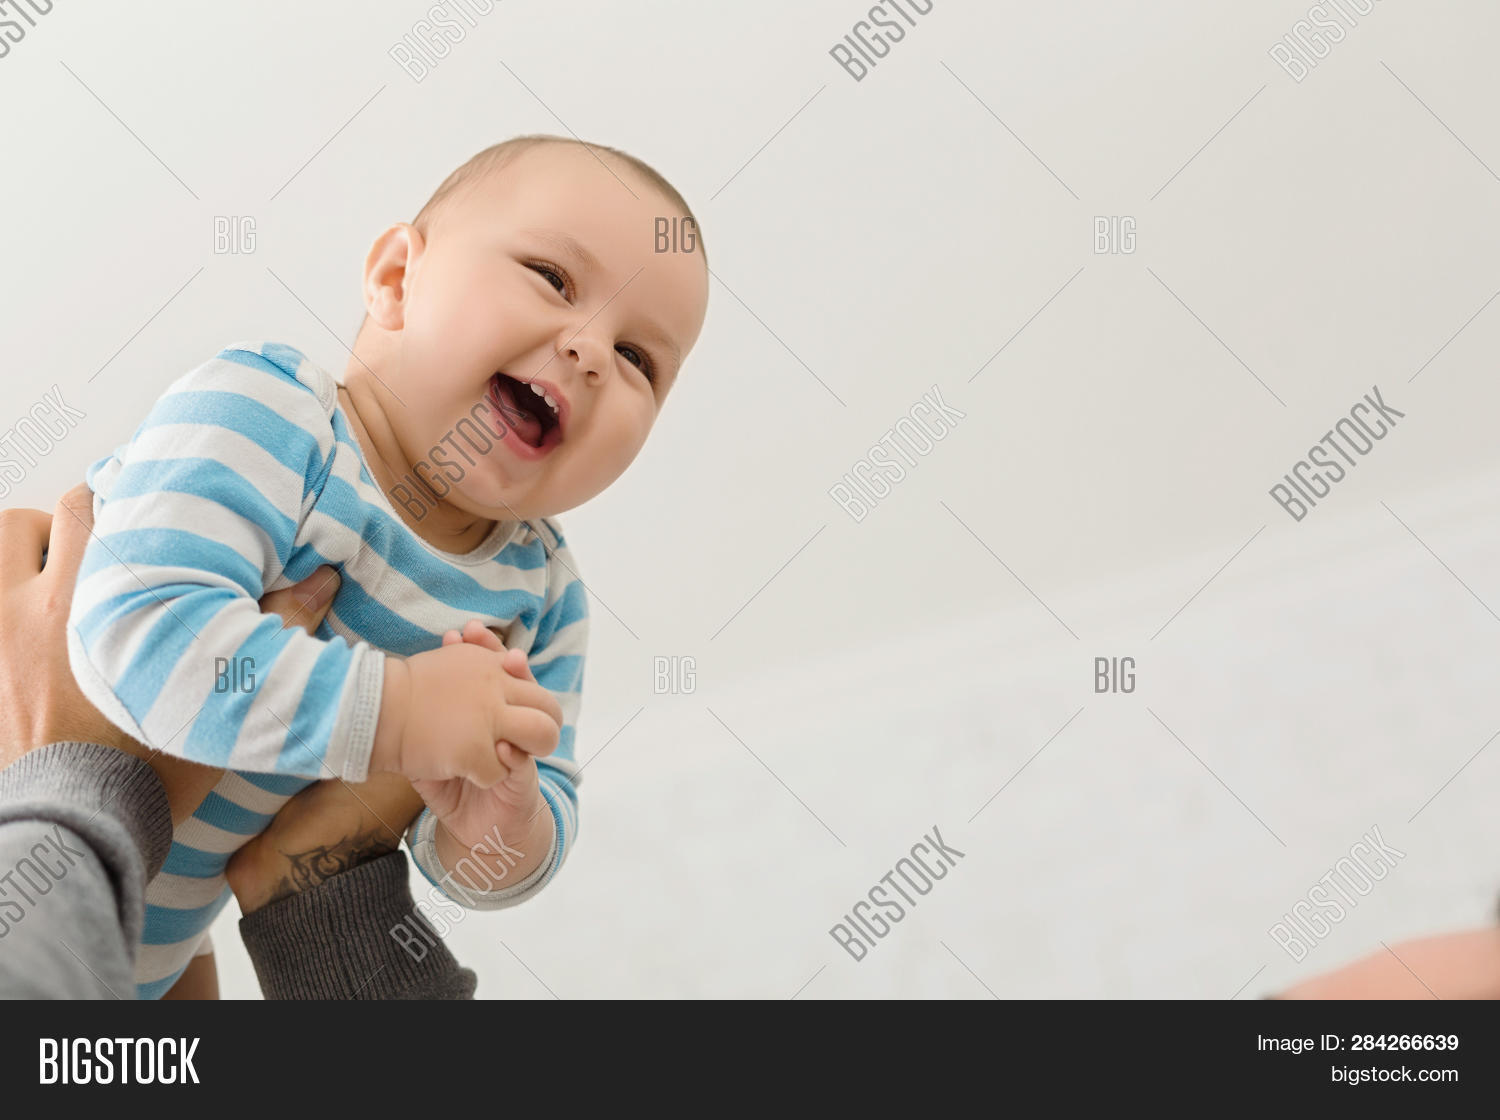 activity,adorable,air,arms,baby,blue,boy,cheerful,child,childhood,cute,dad,daddy,delight,emotion,expression,family,father,feelings,fly,fun,funny,game,hand,happy,hold,holding,joy,joyful,kid,leave,life,lifestyle,love,male,man,parent,paternity,people,play,playing,smile,son,throwing,toddler,together,trust,up,young